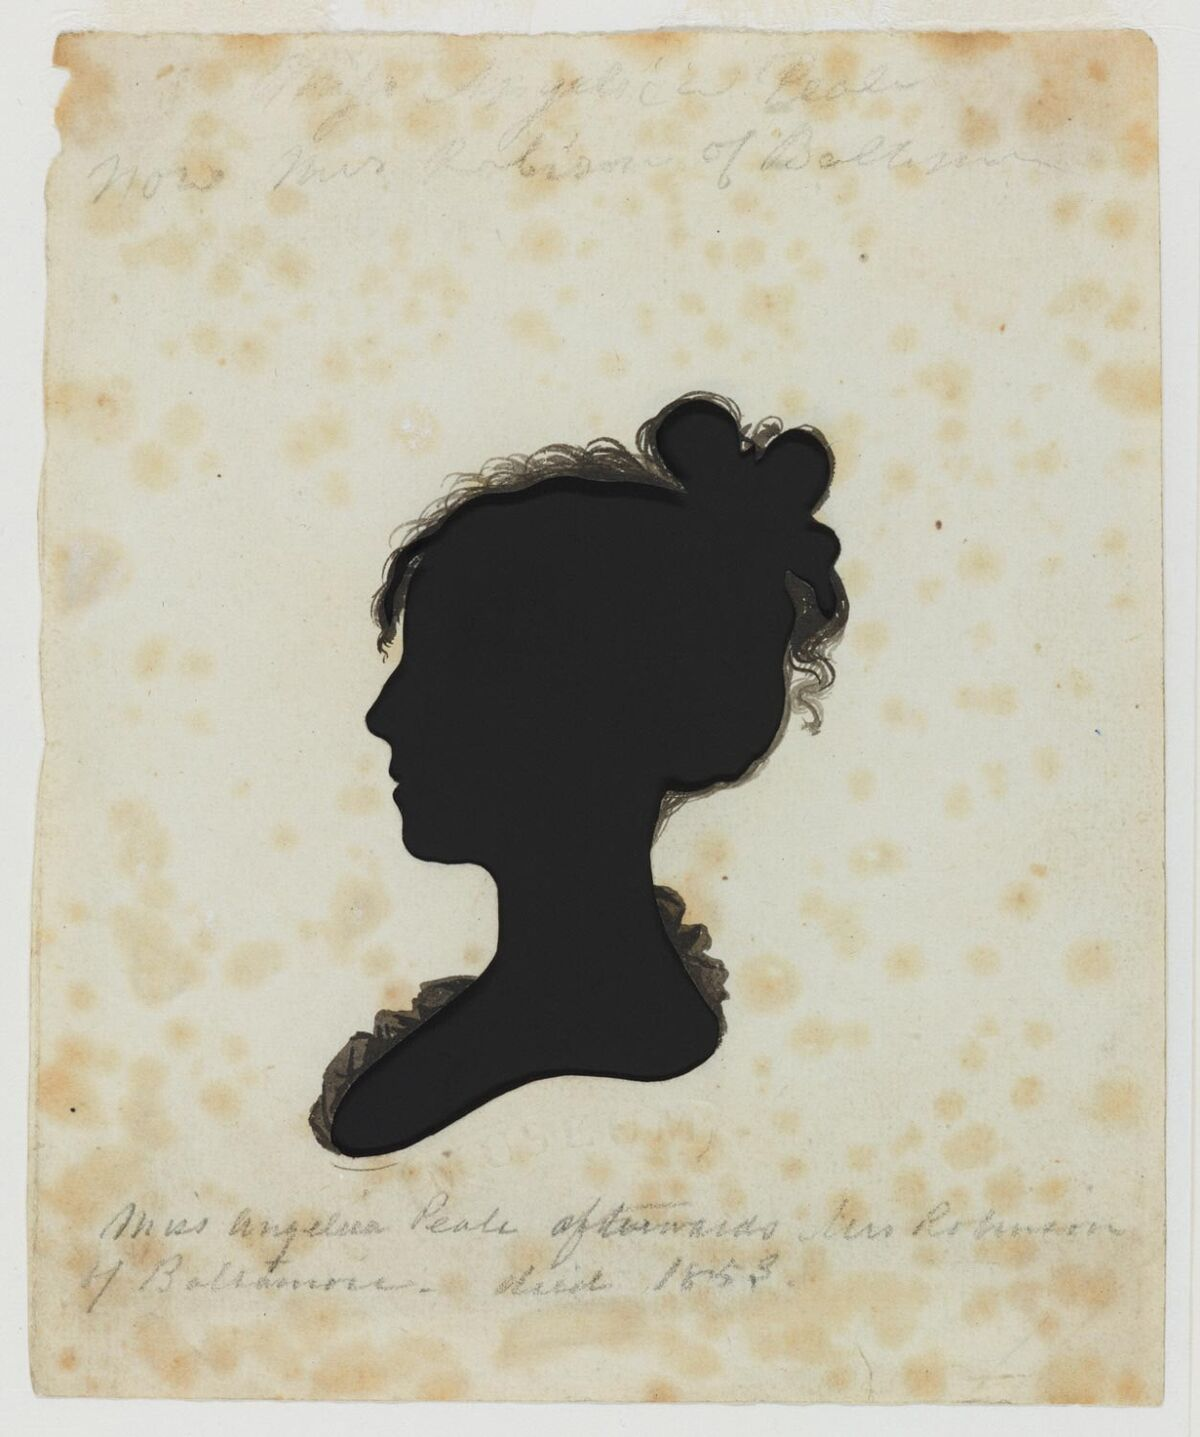 Moses Williams, Angelica Peale Robinson, After 1803. Gift of the McNeil Americana Collection, 2009. Courtesy of the Philadelphia Museum of Art.